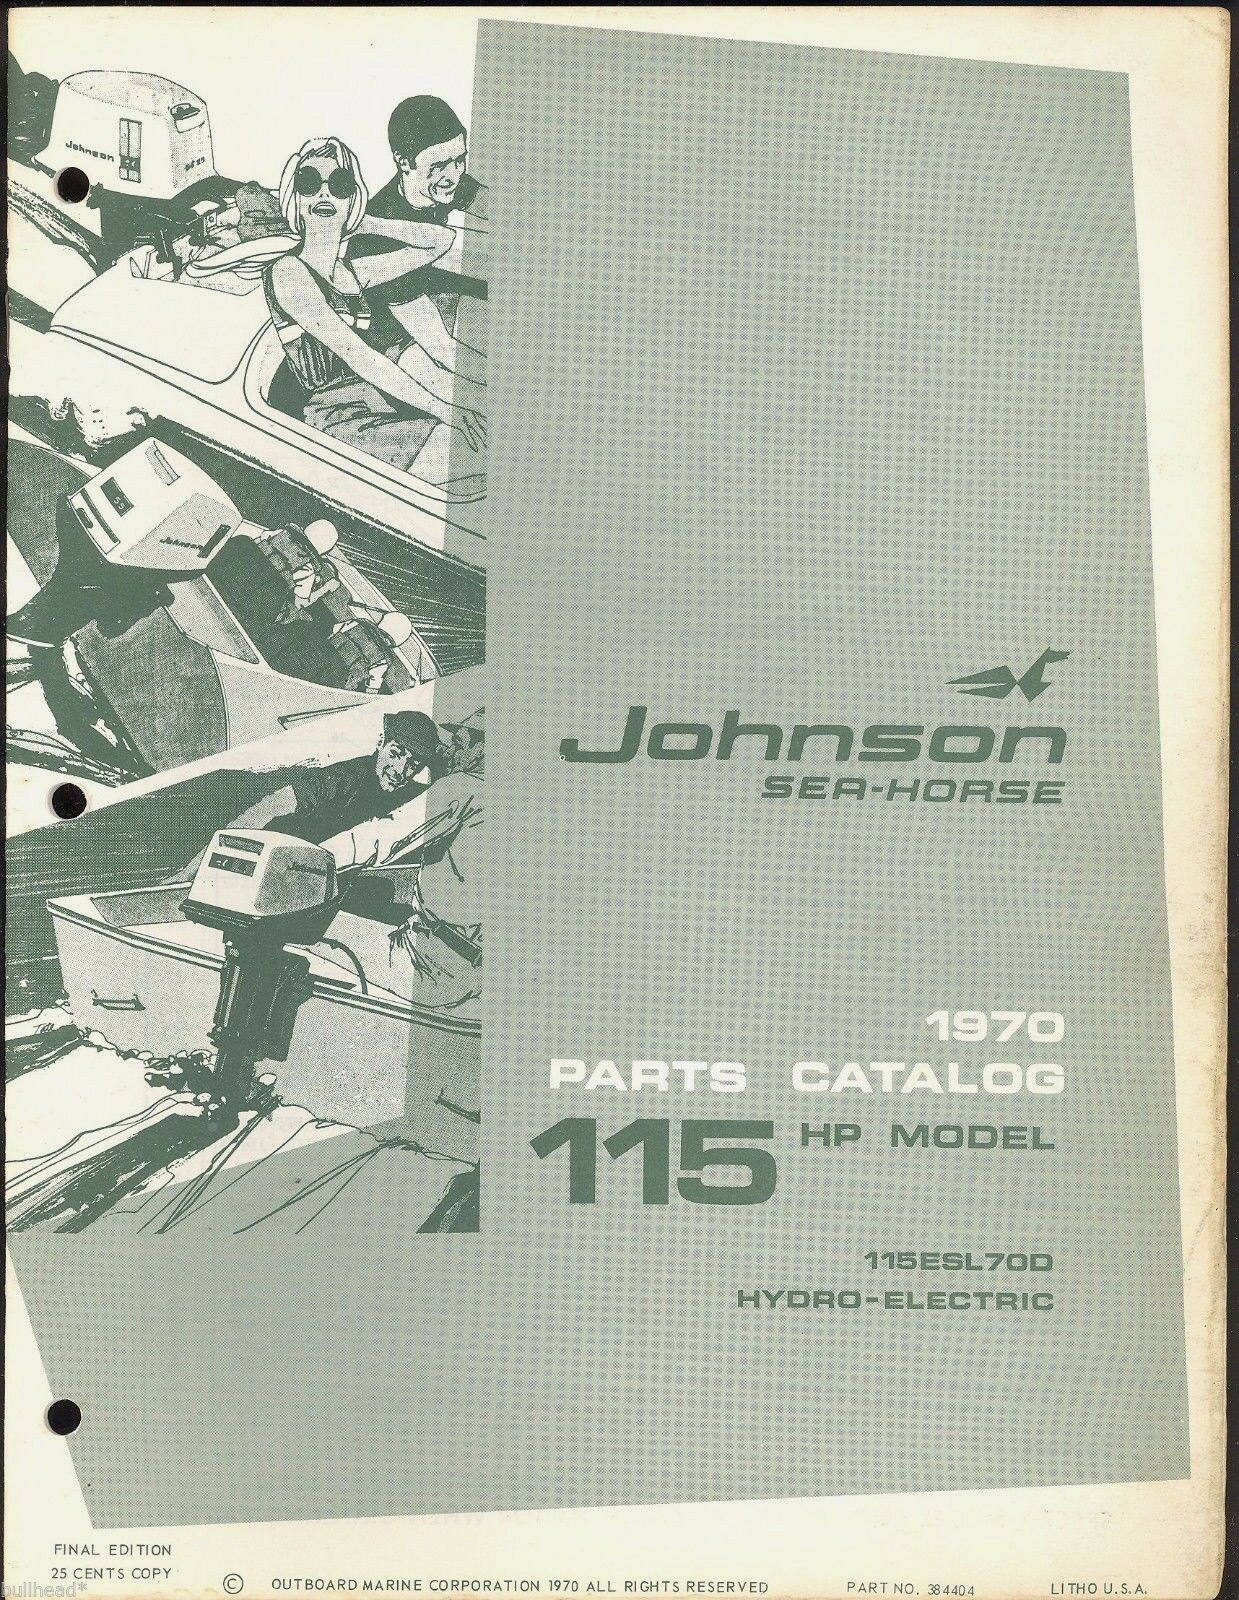 1970 Johnson 115Hp / 115Esl70D / Outboard Motor Parts Manual / 384404 1 of  1Only 2 available ...